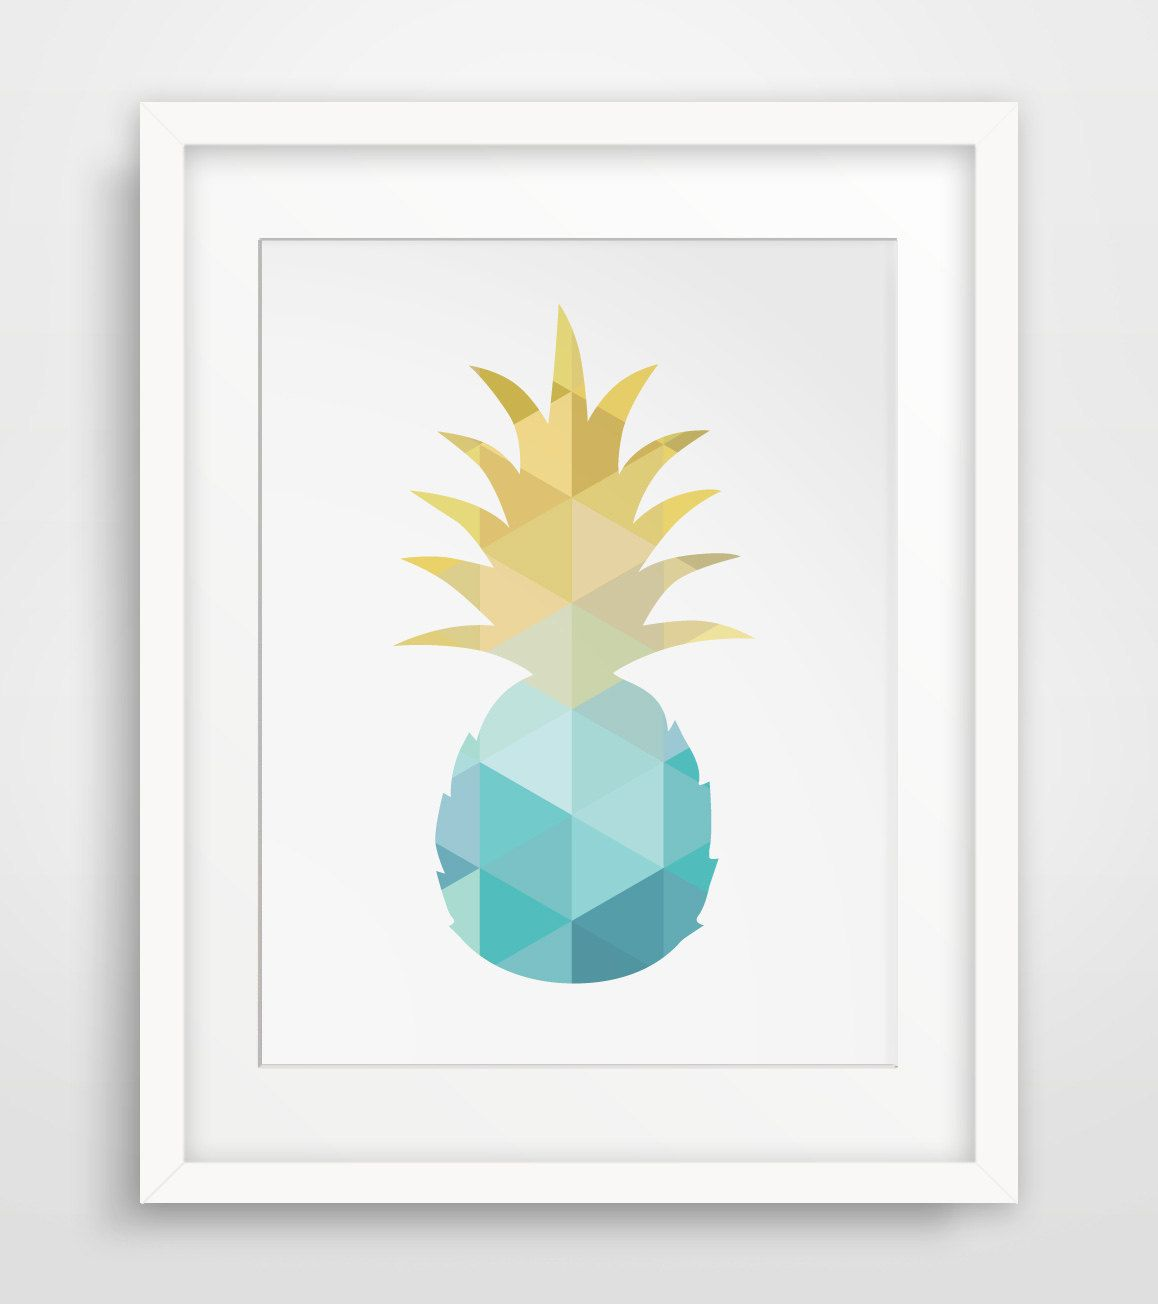 Pineapple Turquoise Pineapple Art Blue And Yellow Summer Art Teal And Gold Pineapple Wall Art Turquoise Pineapple Art Pineapple Wall Art Blue Art Prints